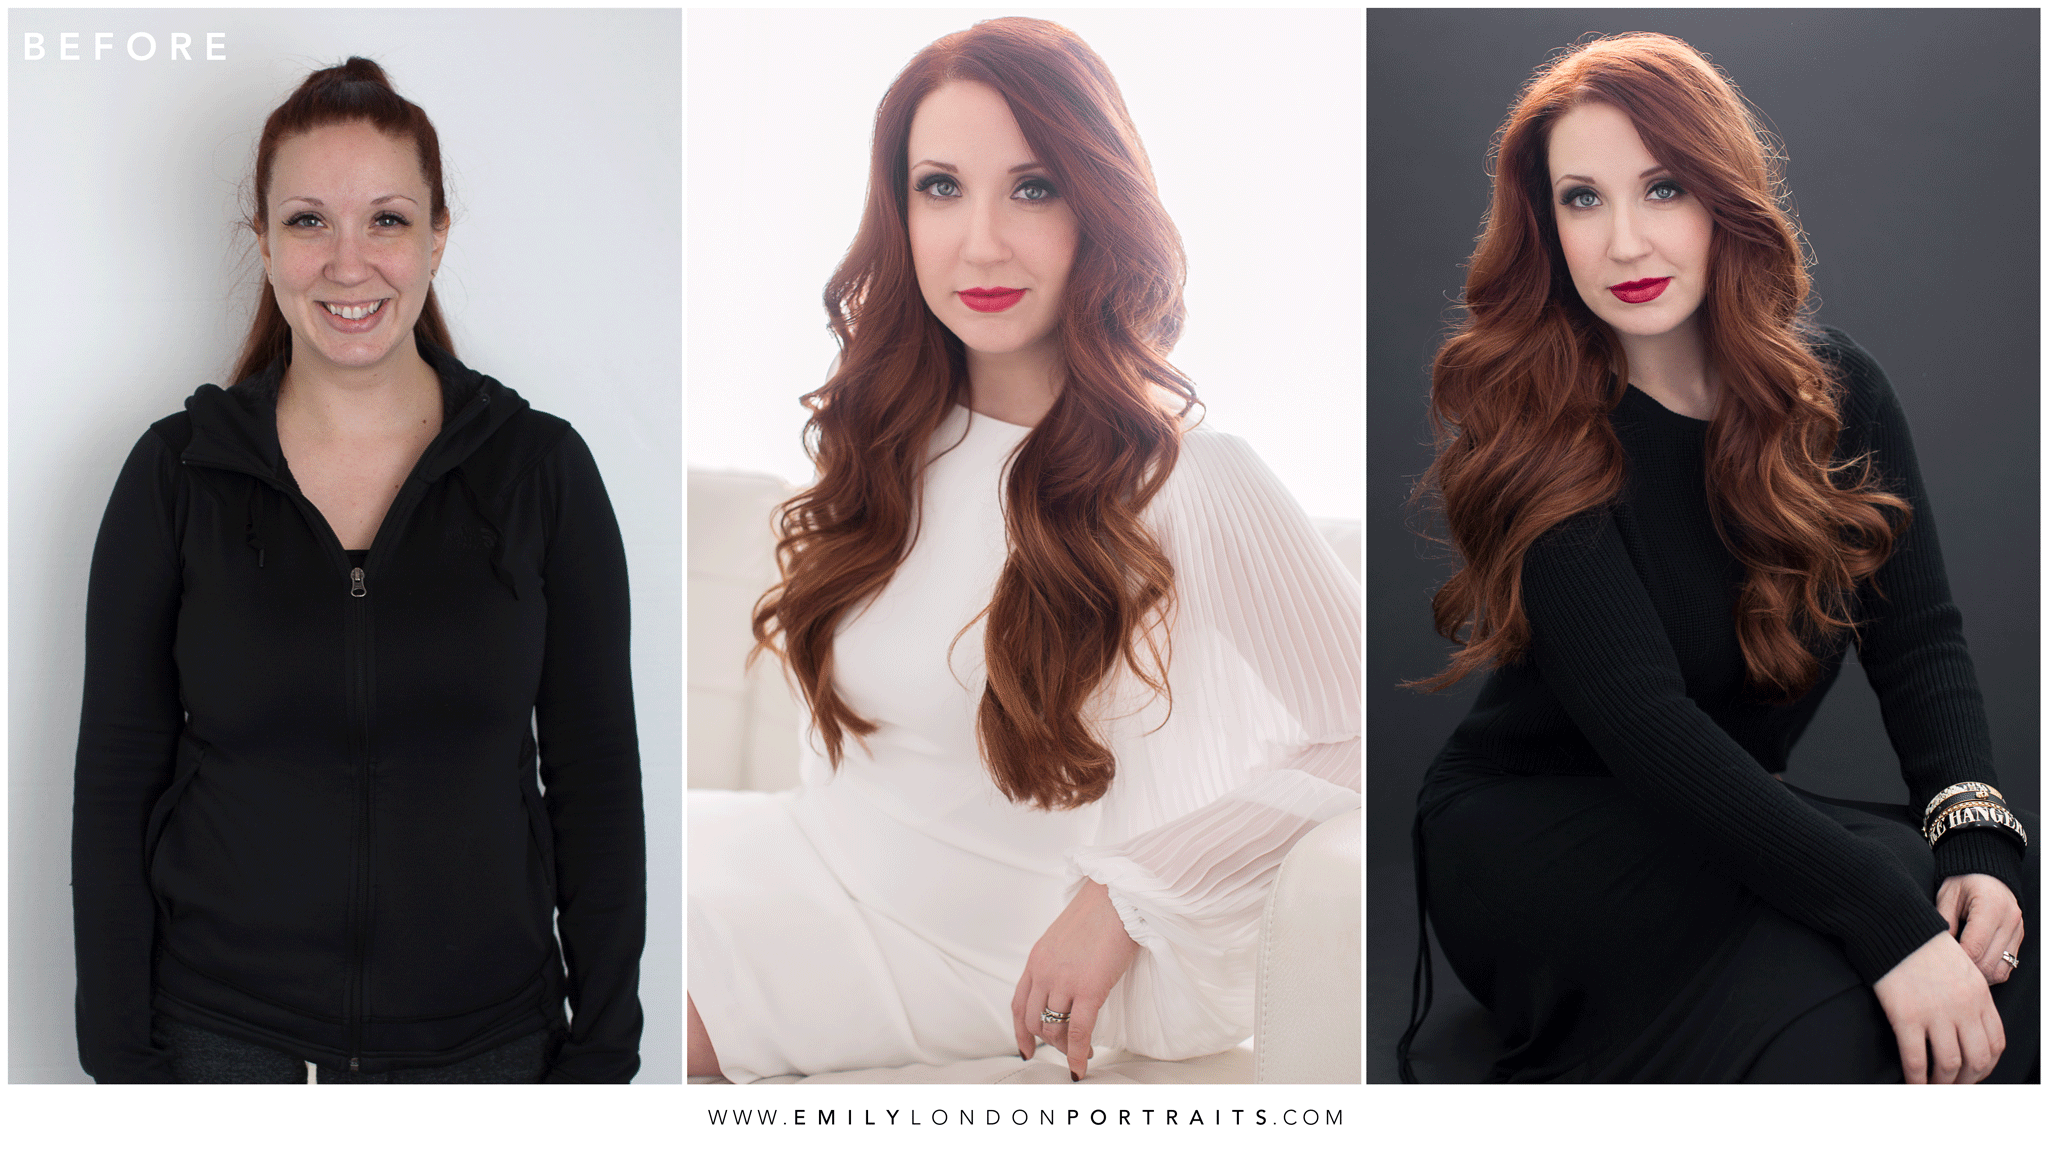 Before and After a Beautiful Portrait Session with Emily London Miller